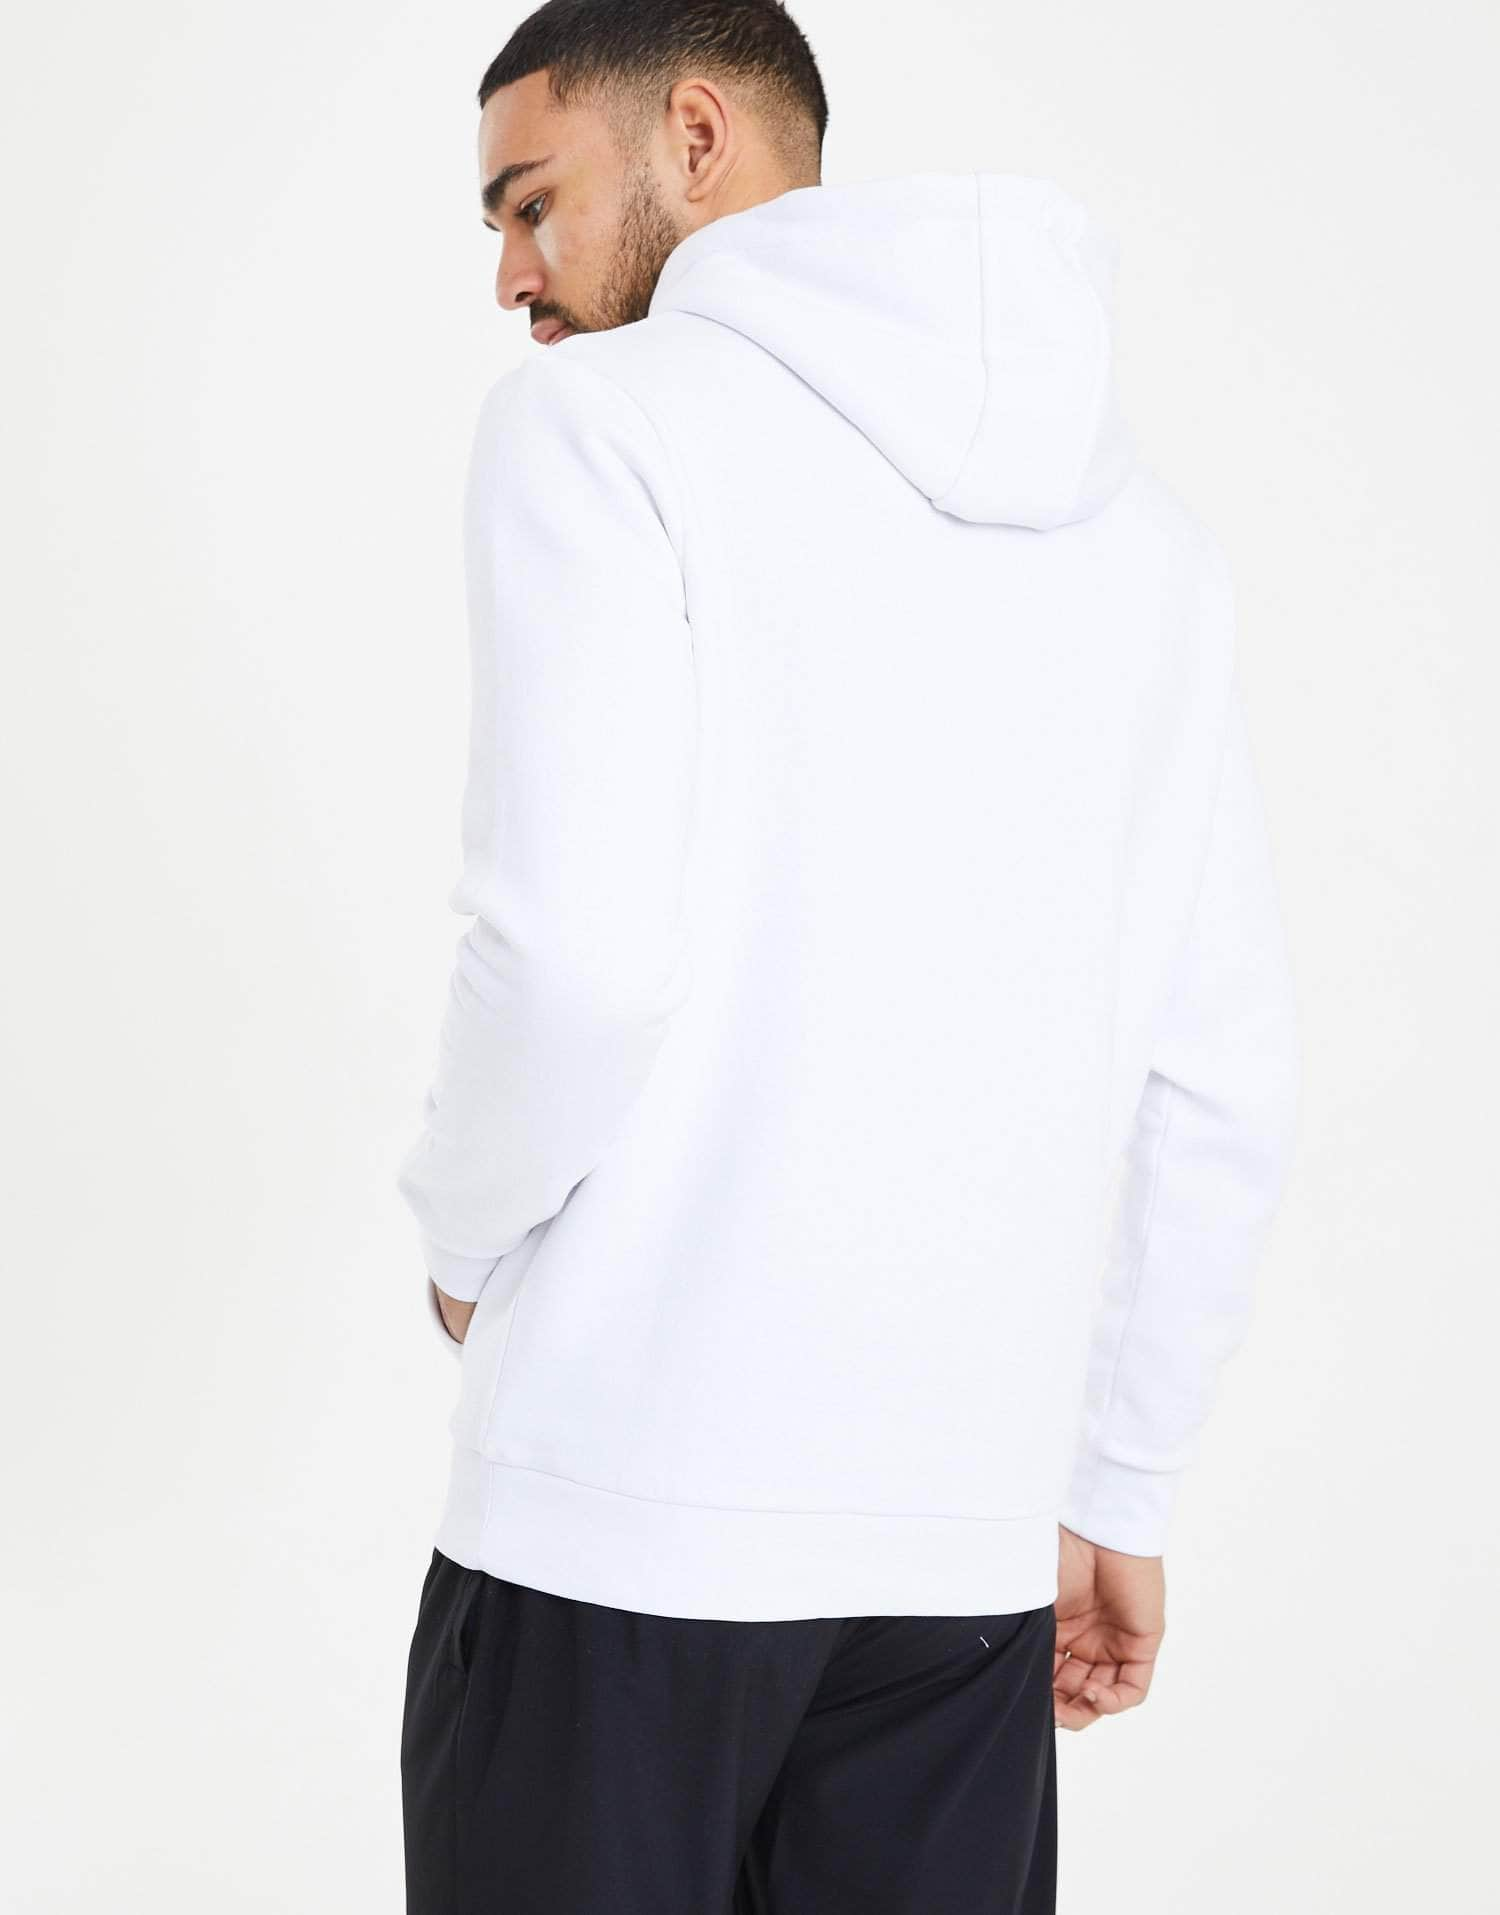 Jameson Carter Hoodies, not-sale Exchange Hoodie - White